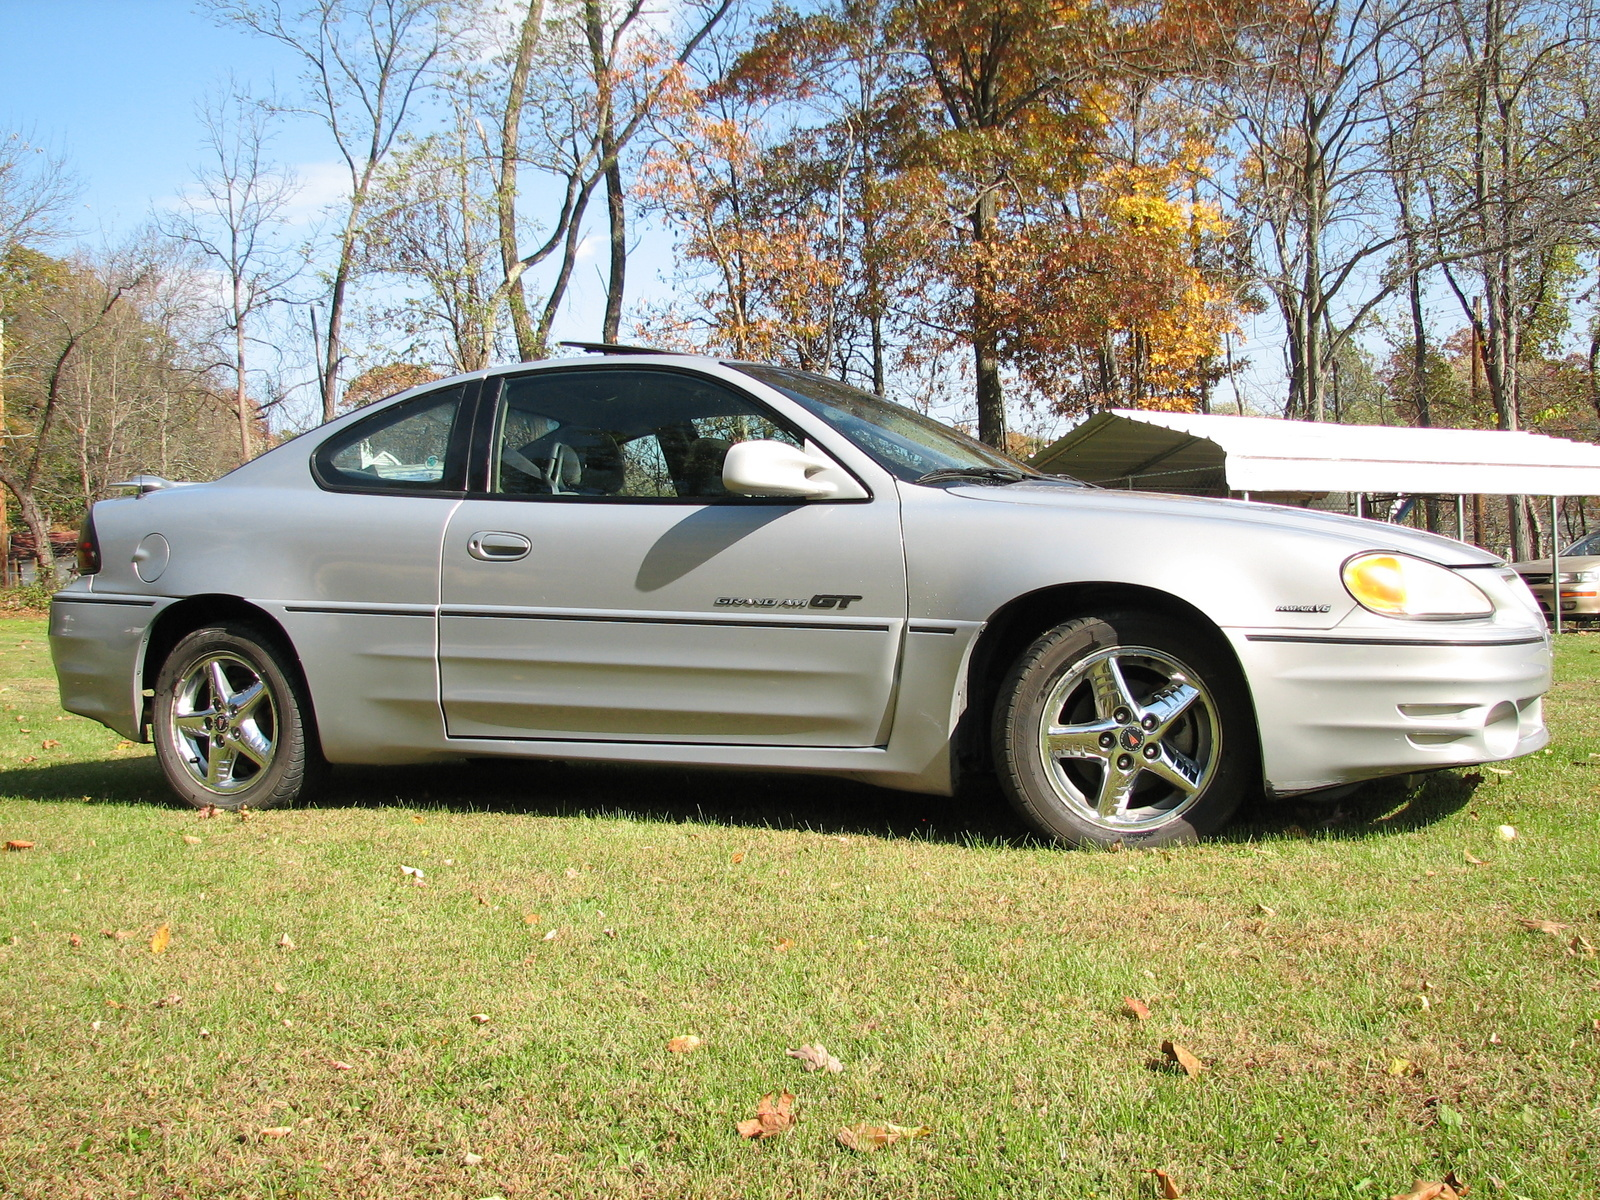 pontiac grand am questions change 3 4 engine cargurus pontiac grand am questions change 3 4